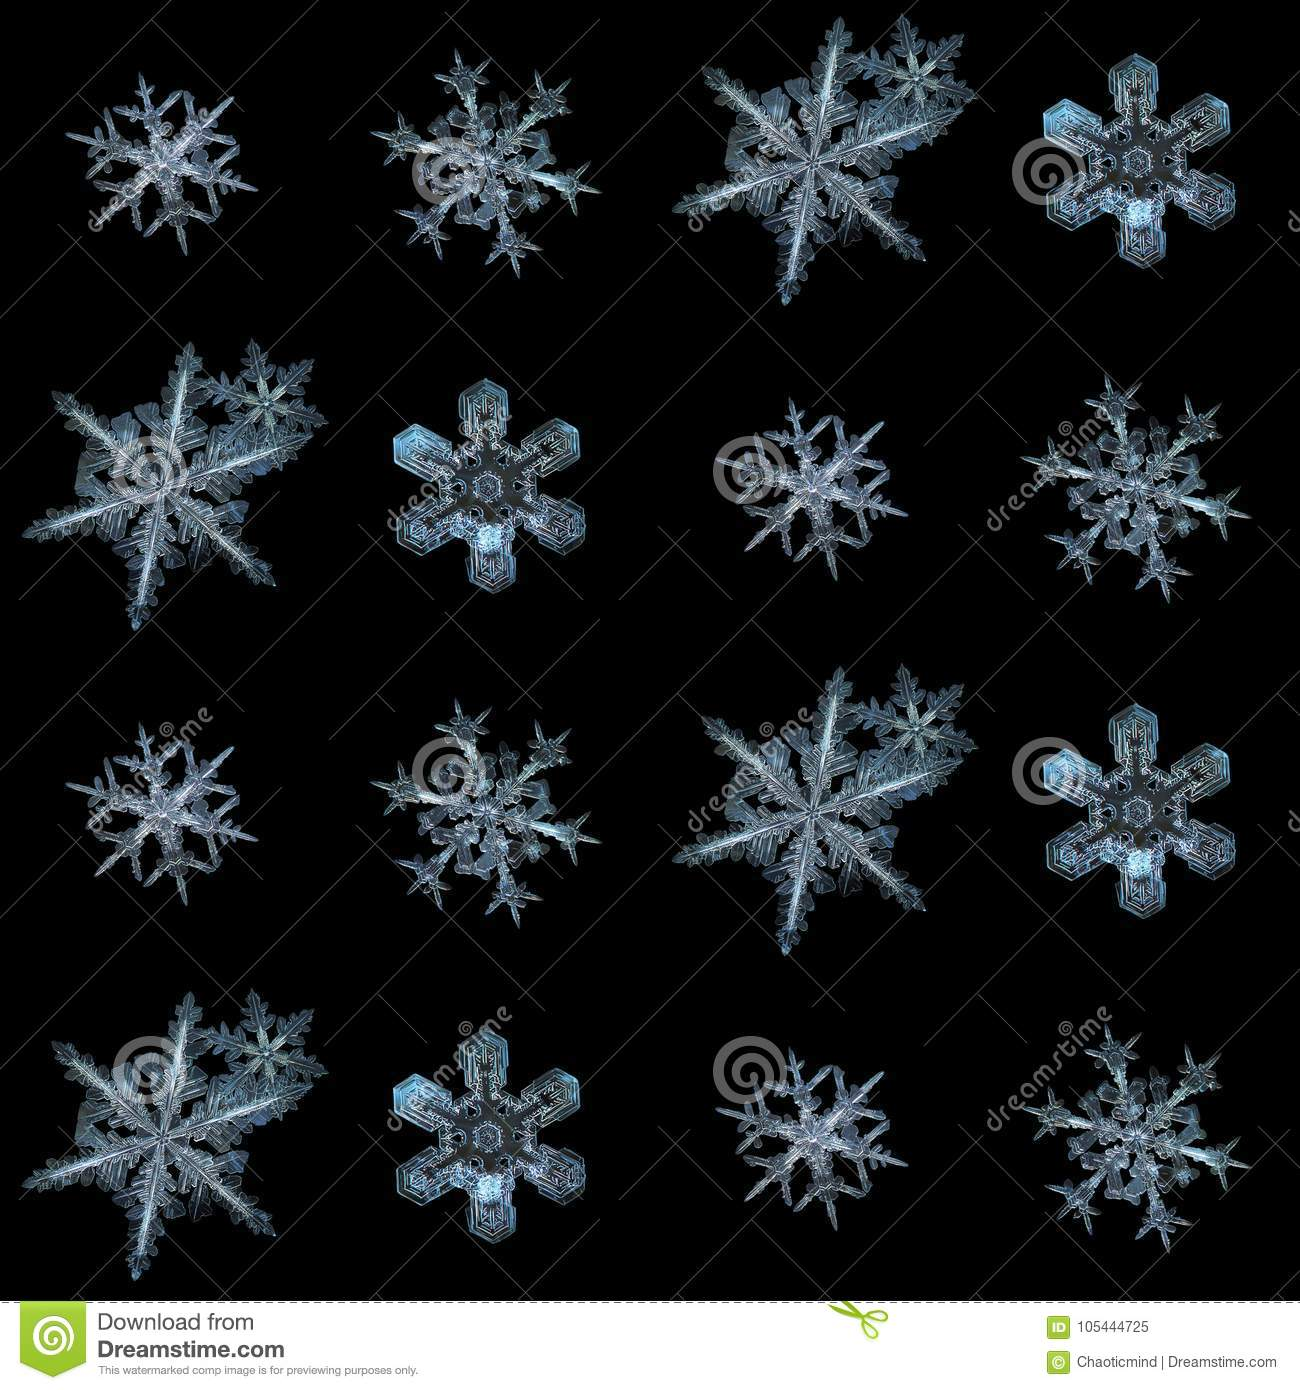 real snowflake - Free Large Images |Real Snowflakes Background